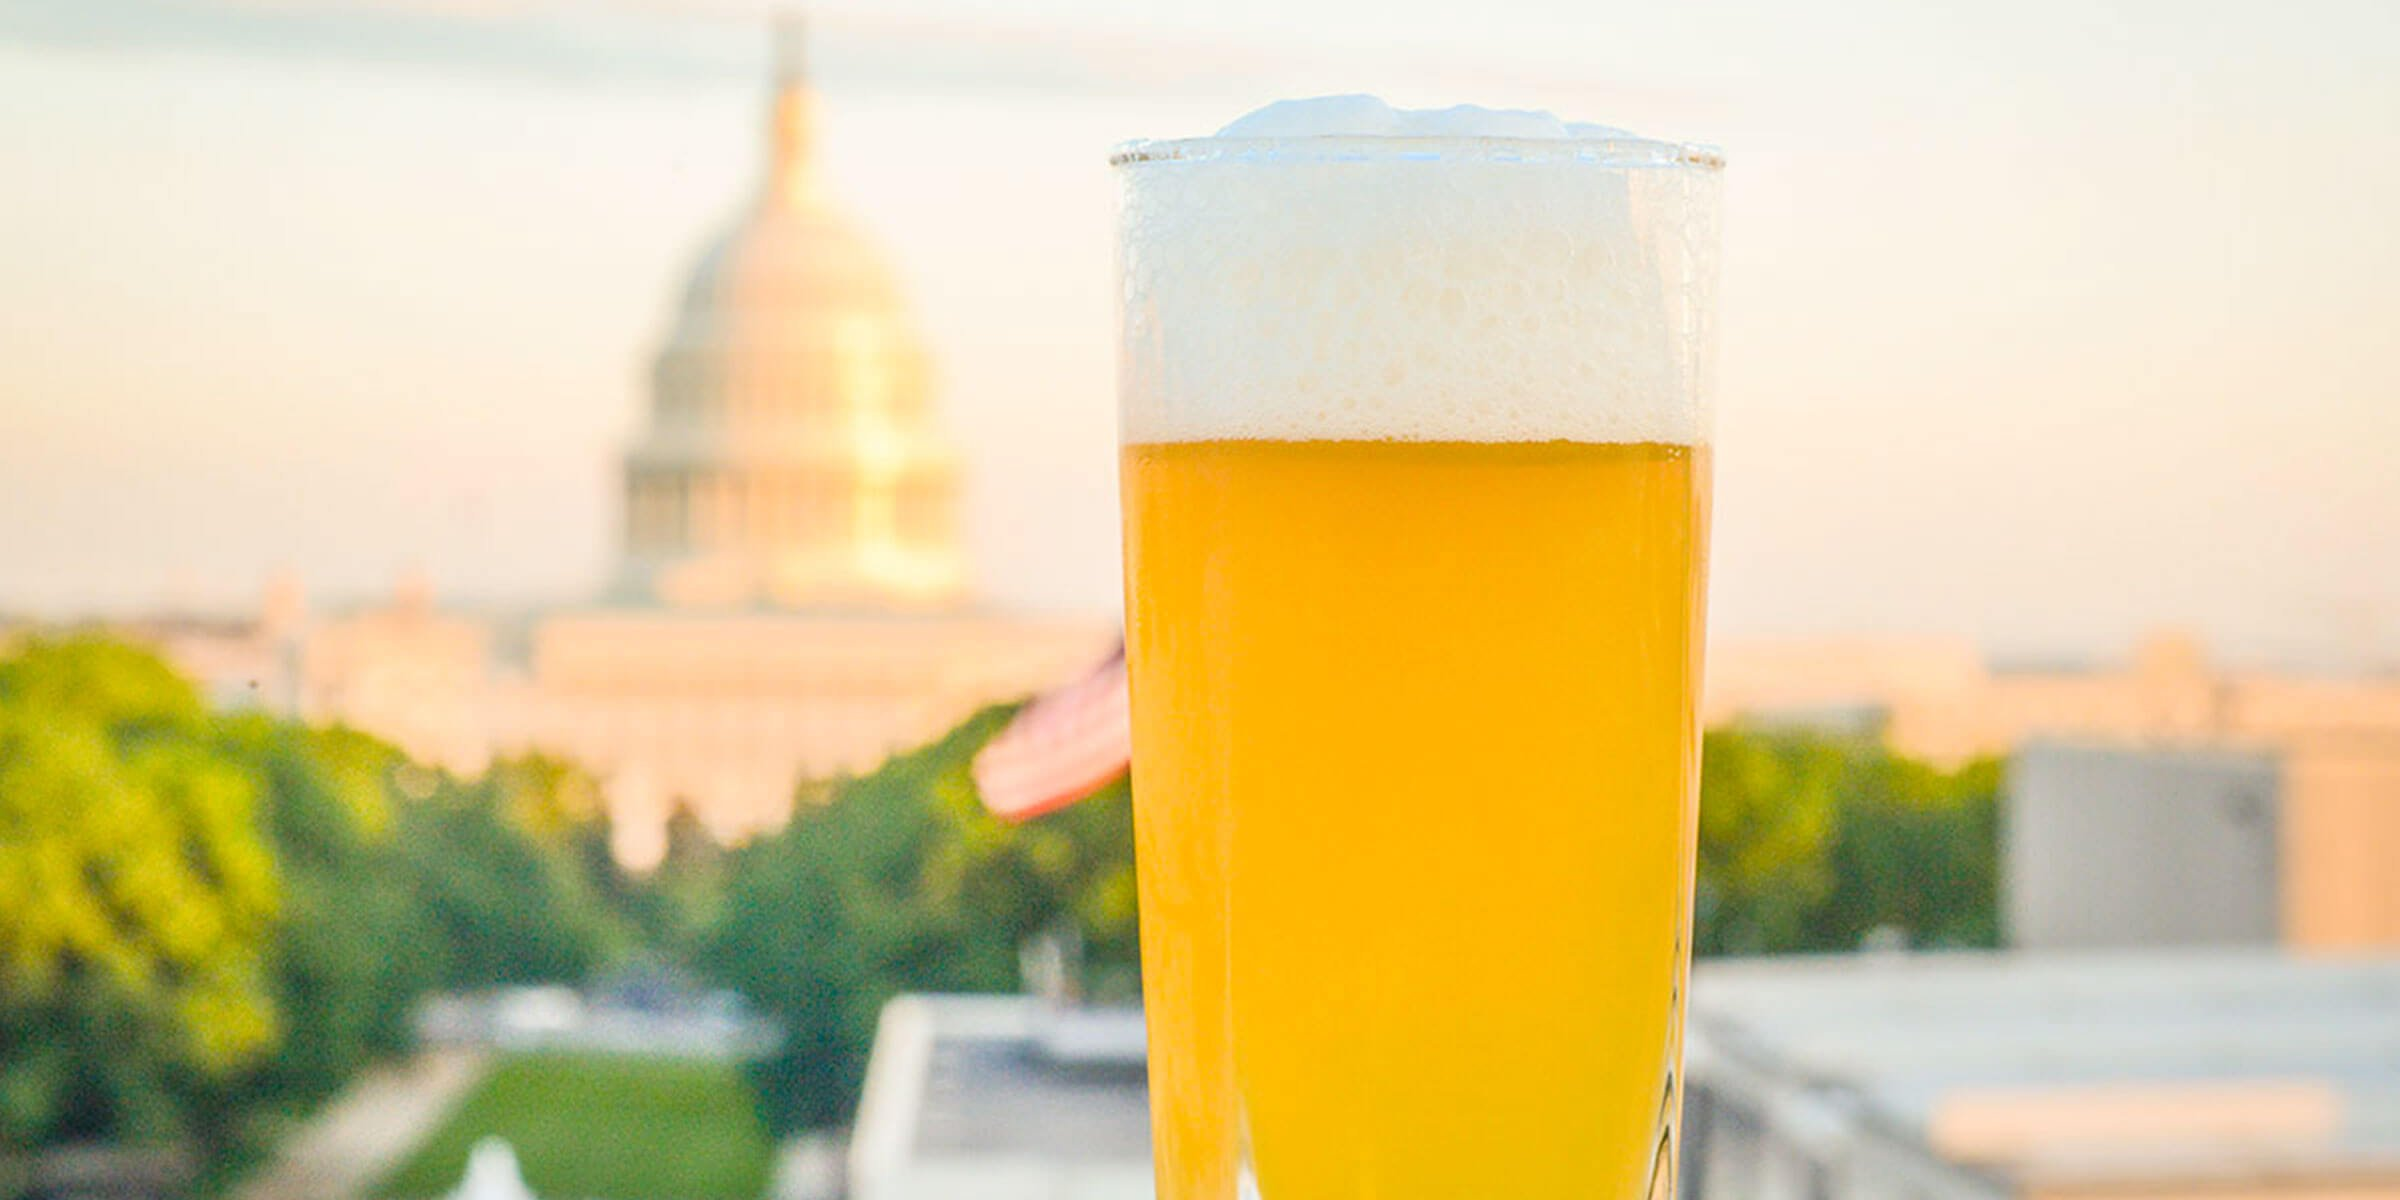 Beer in a glass in front of the U.S. Capitol Building in Washington, DC